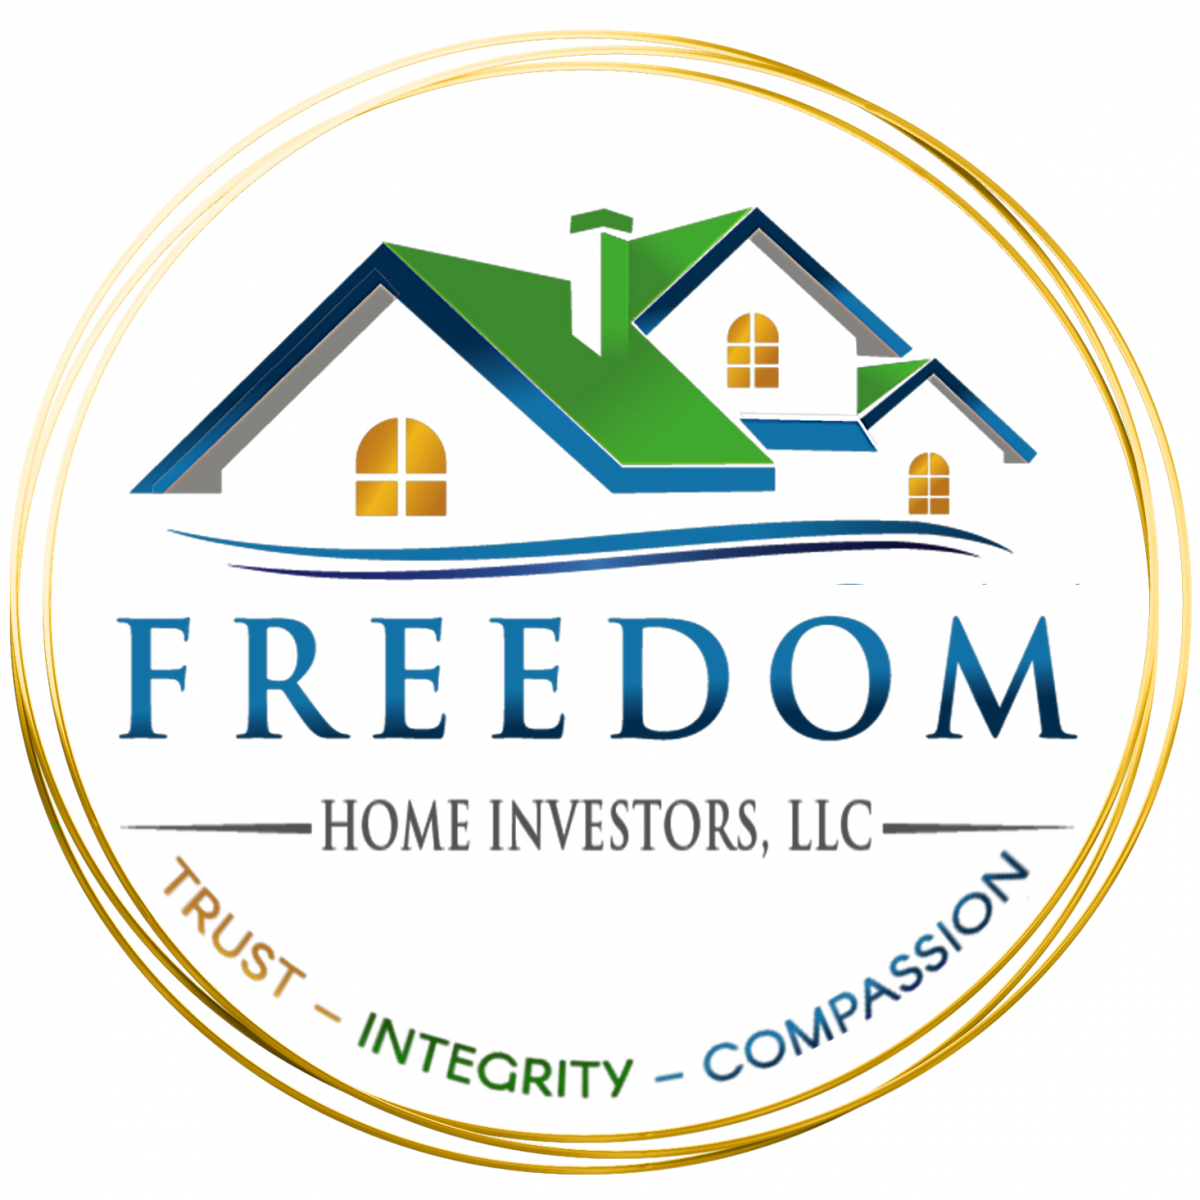 Freedom Home Investors logo